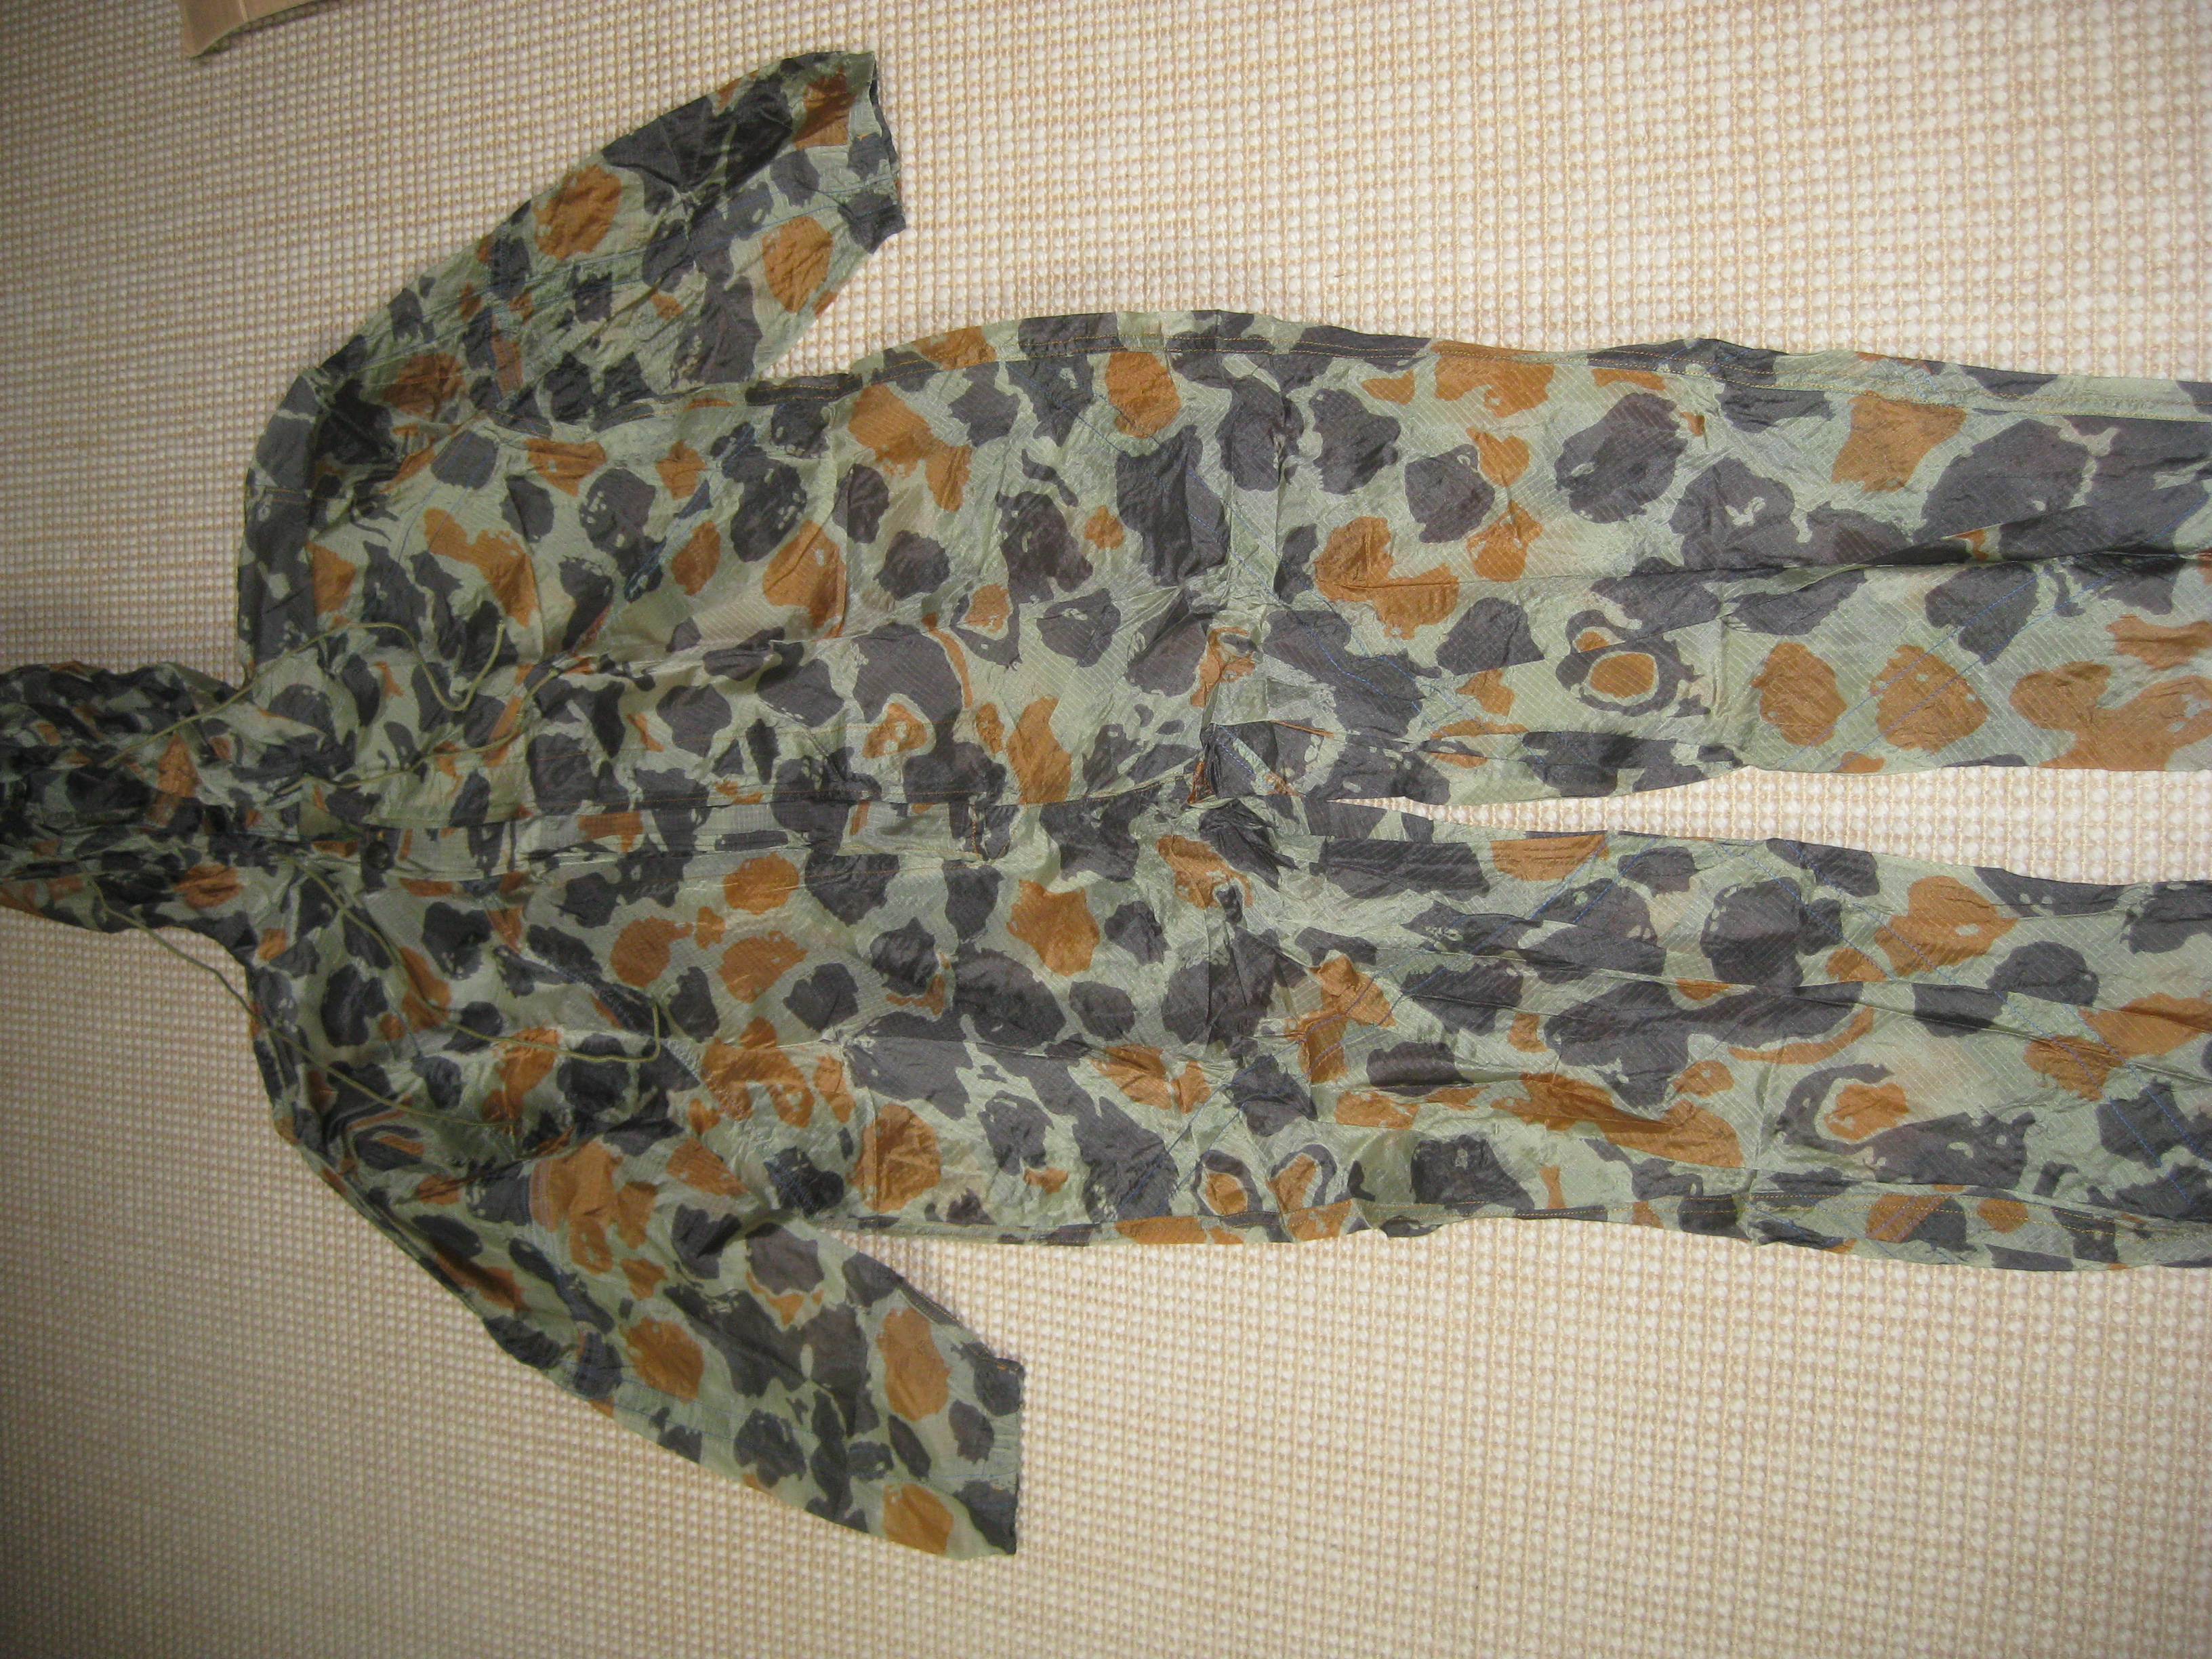 paratrooper garment camouflage build in parachute material Picture024b